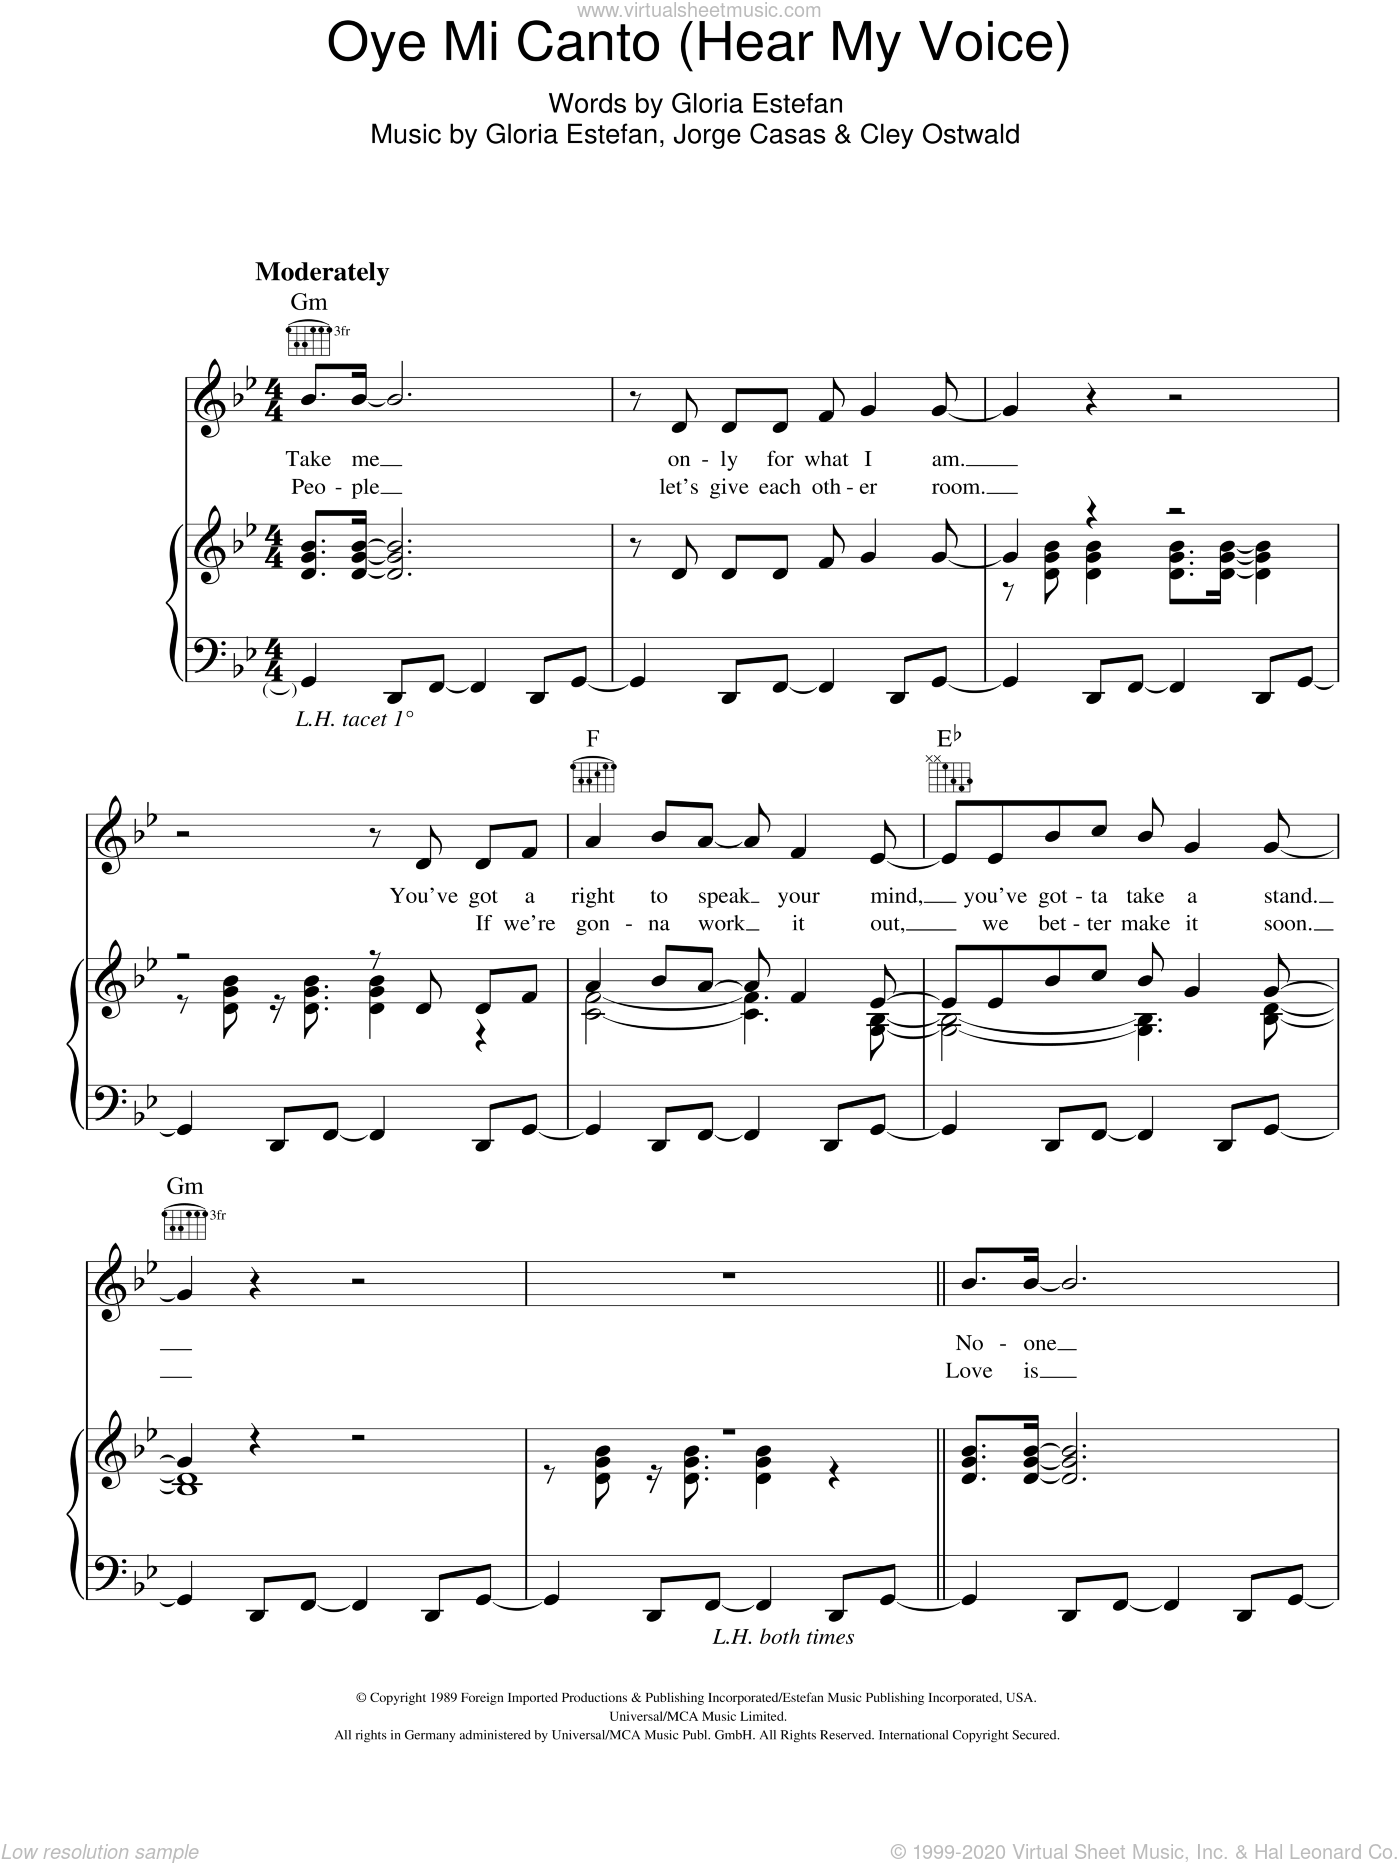 Oye Mi Canto (Hear My Voice) sheet music for voice, piano or guitar by Jorge Casas